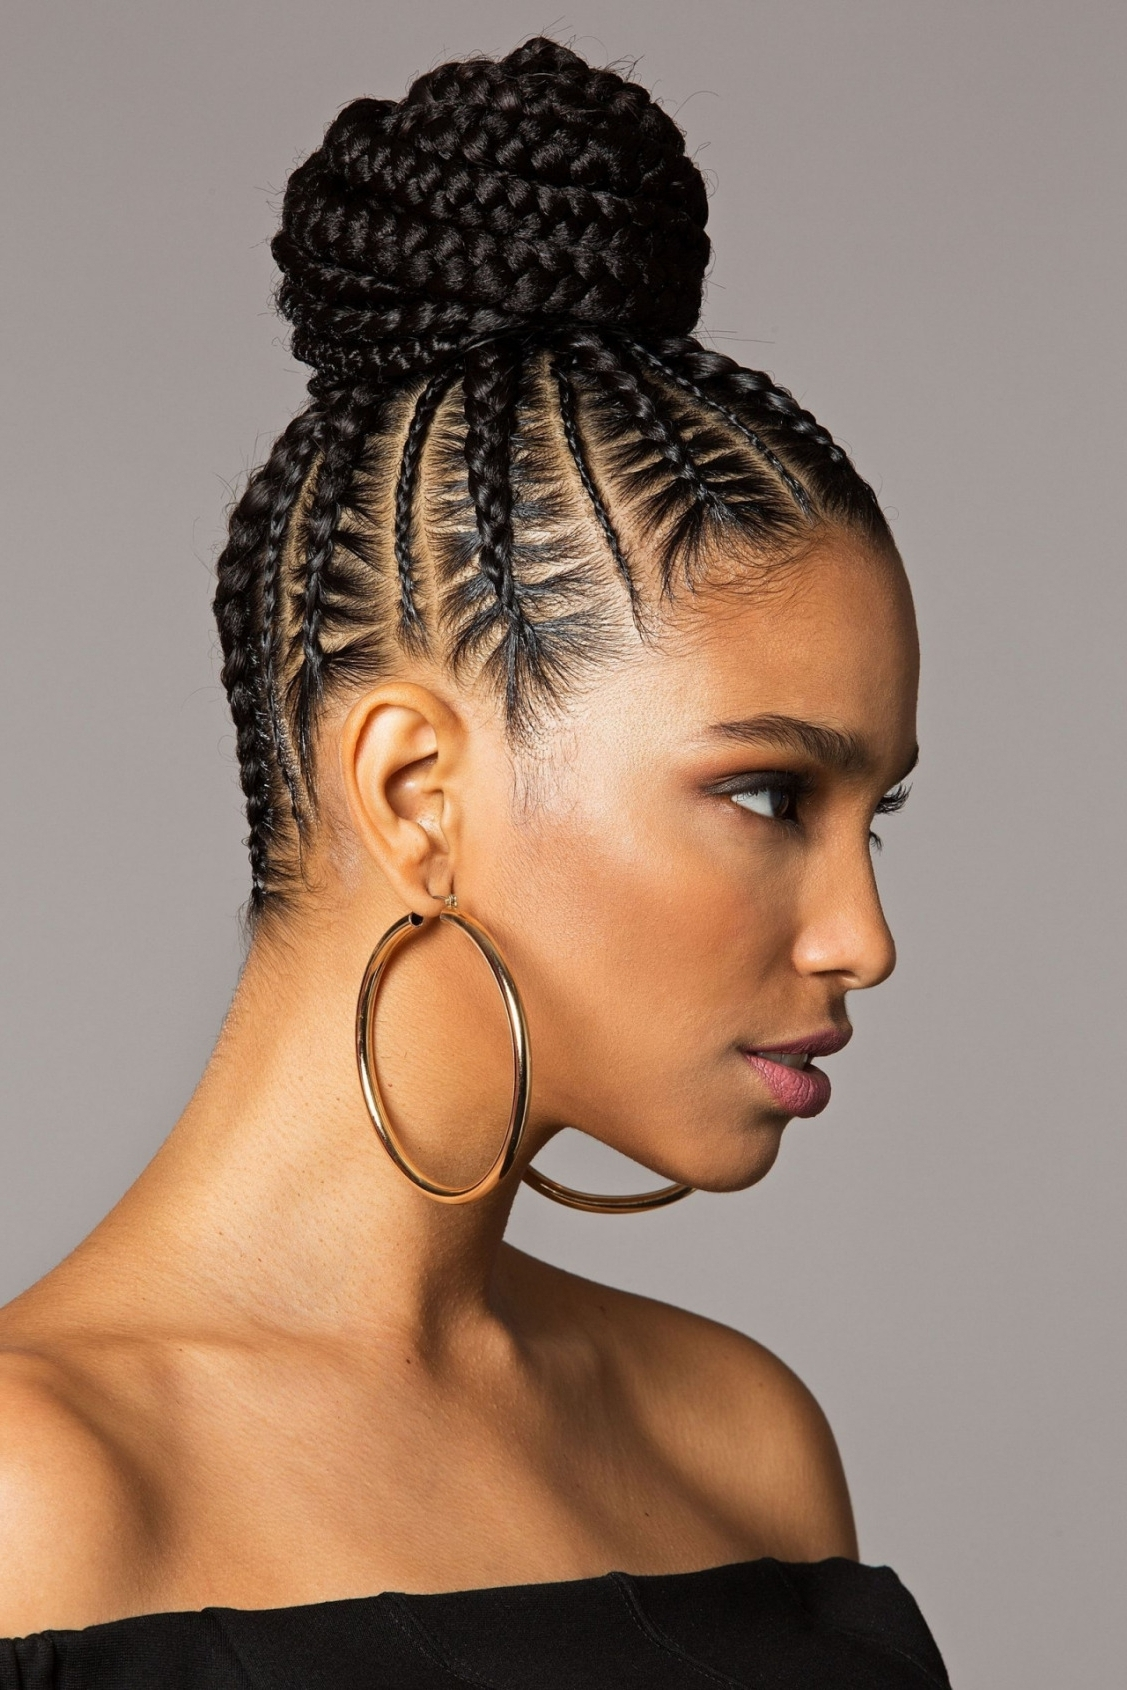 Natural Cornrow Hairstyles Black Women Braided Hairstyles (View 7 of 15)